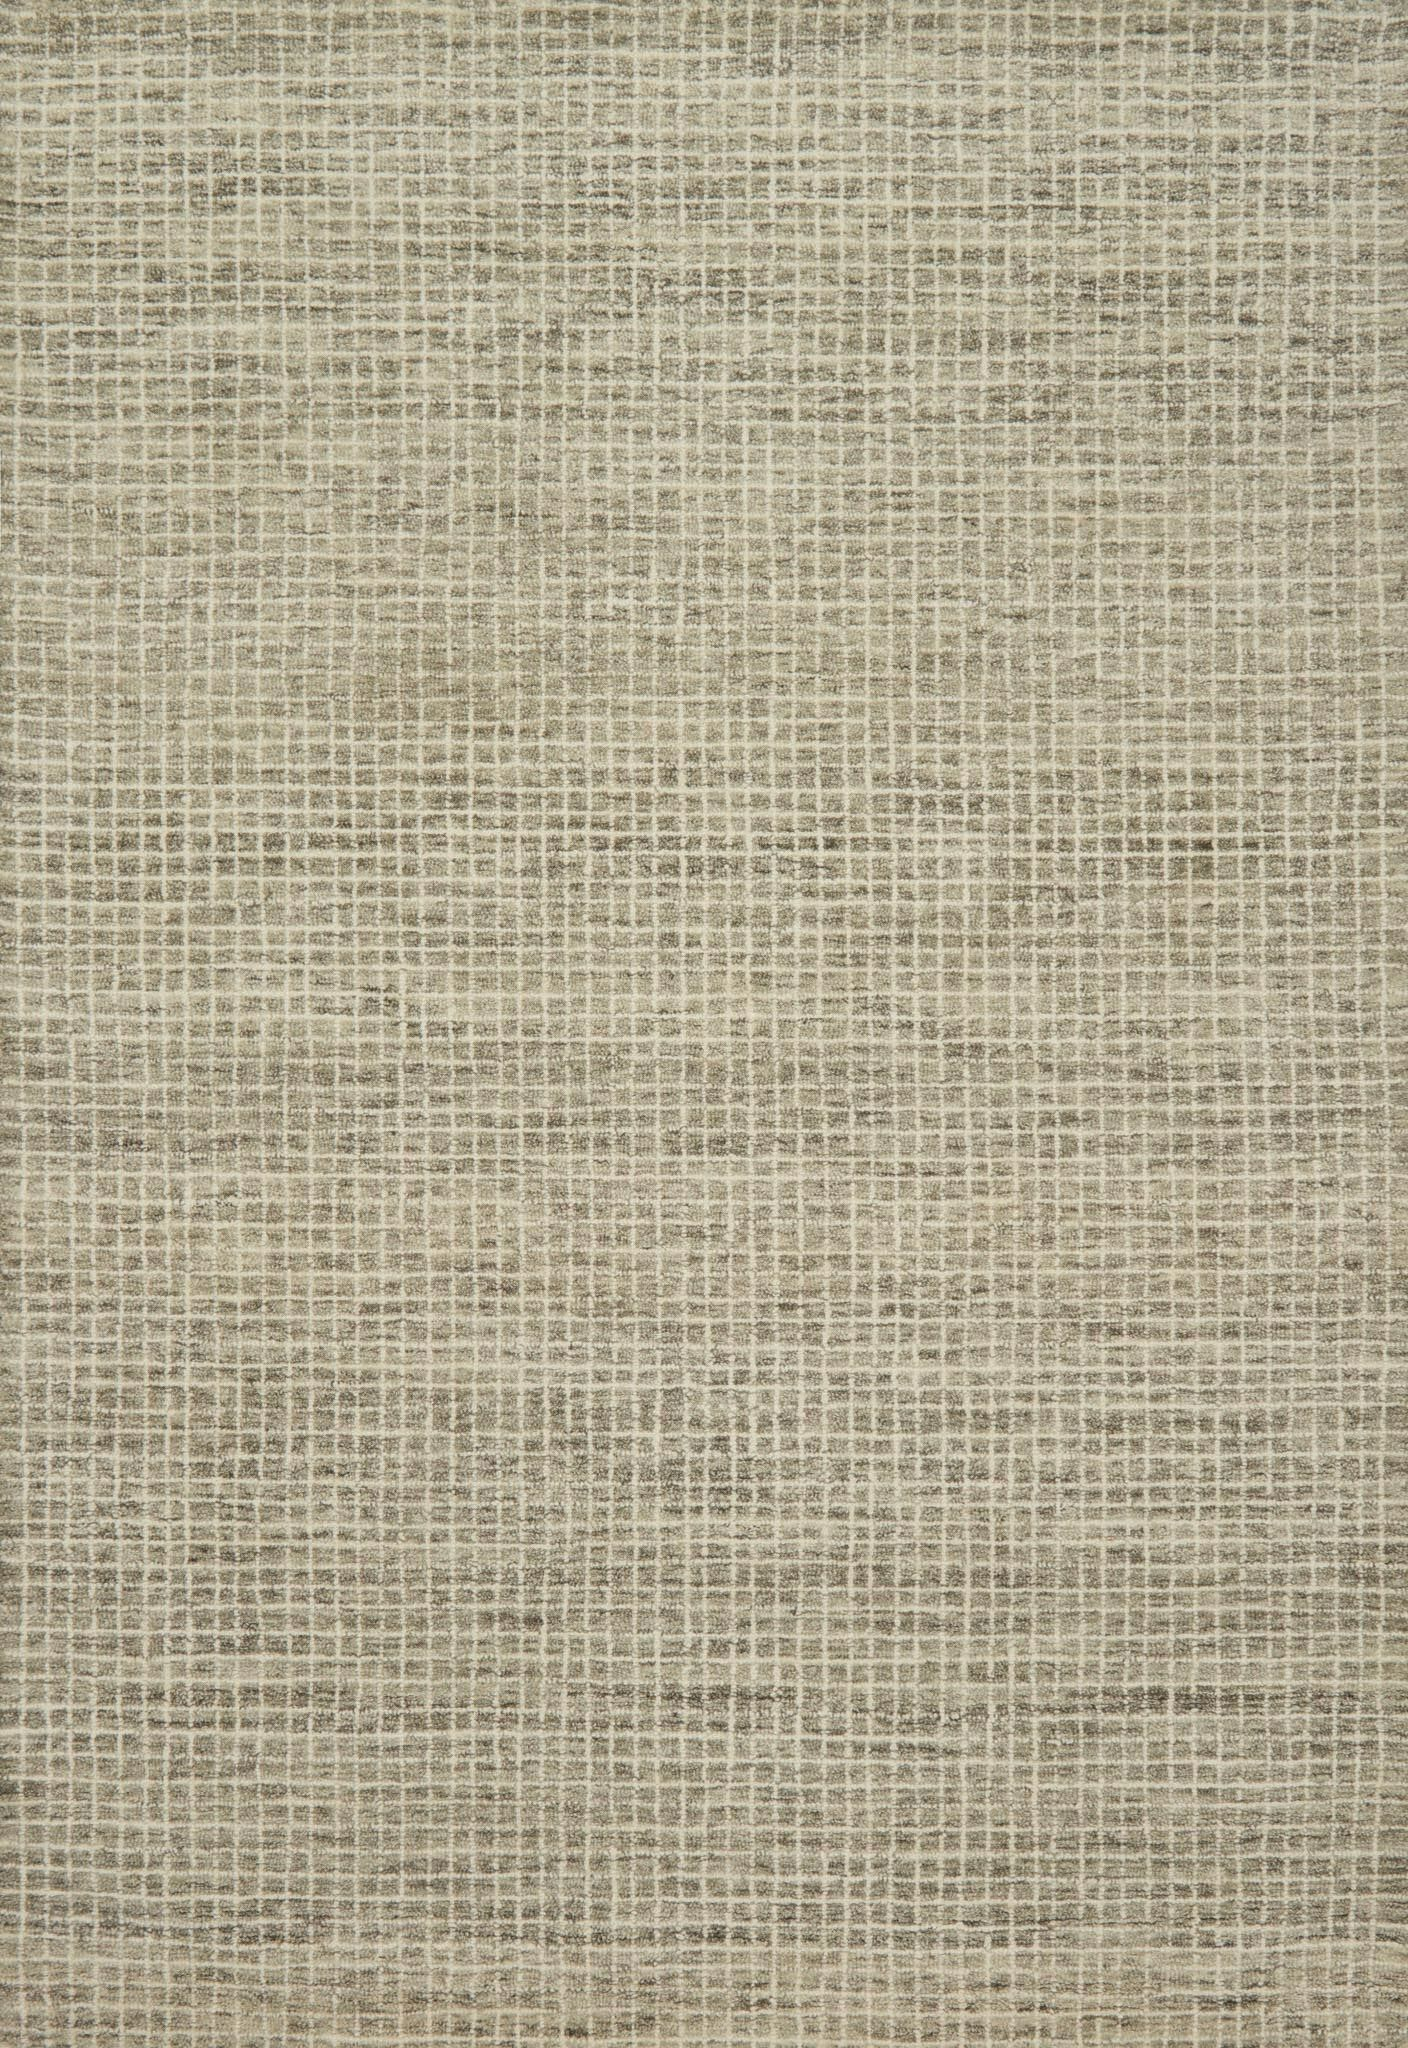 Bourque Hand-Hooked Wool Granite Area Rug Rug Size: Rectangle 12' x 15'